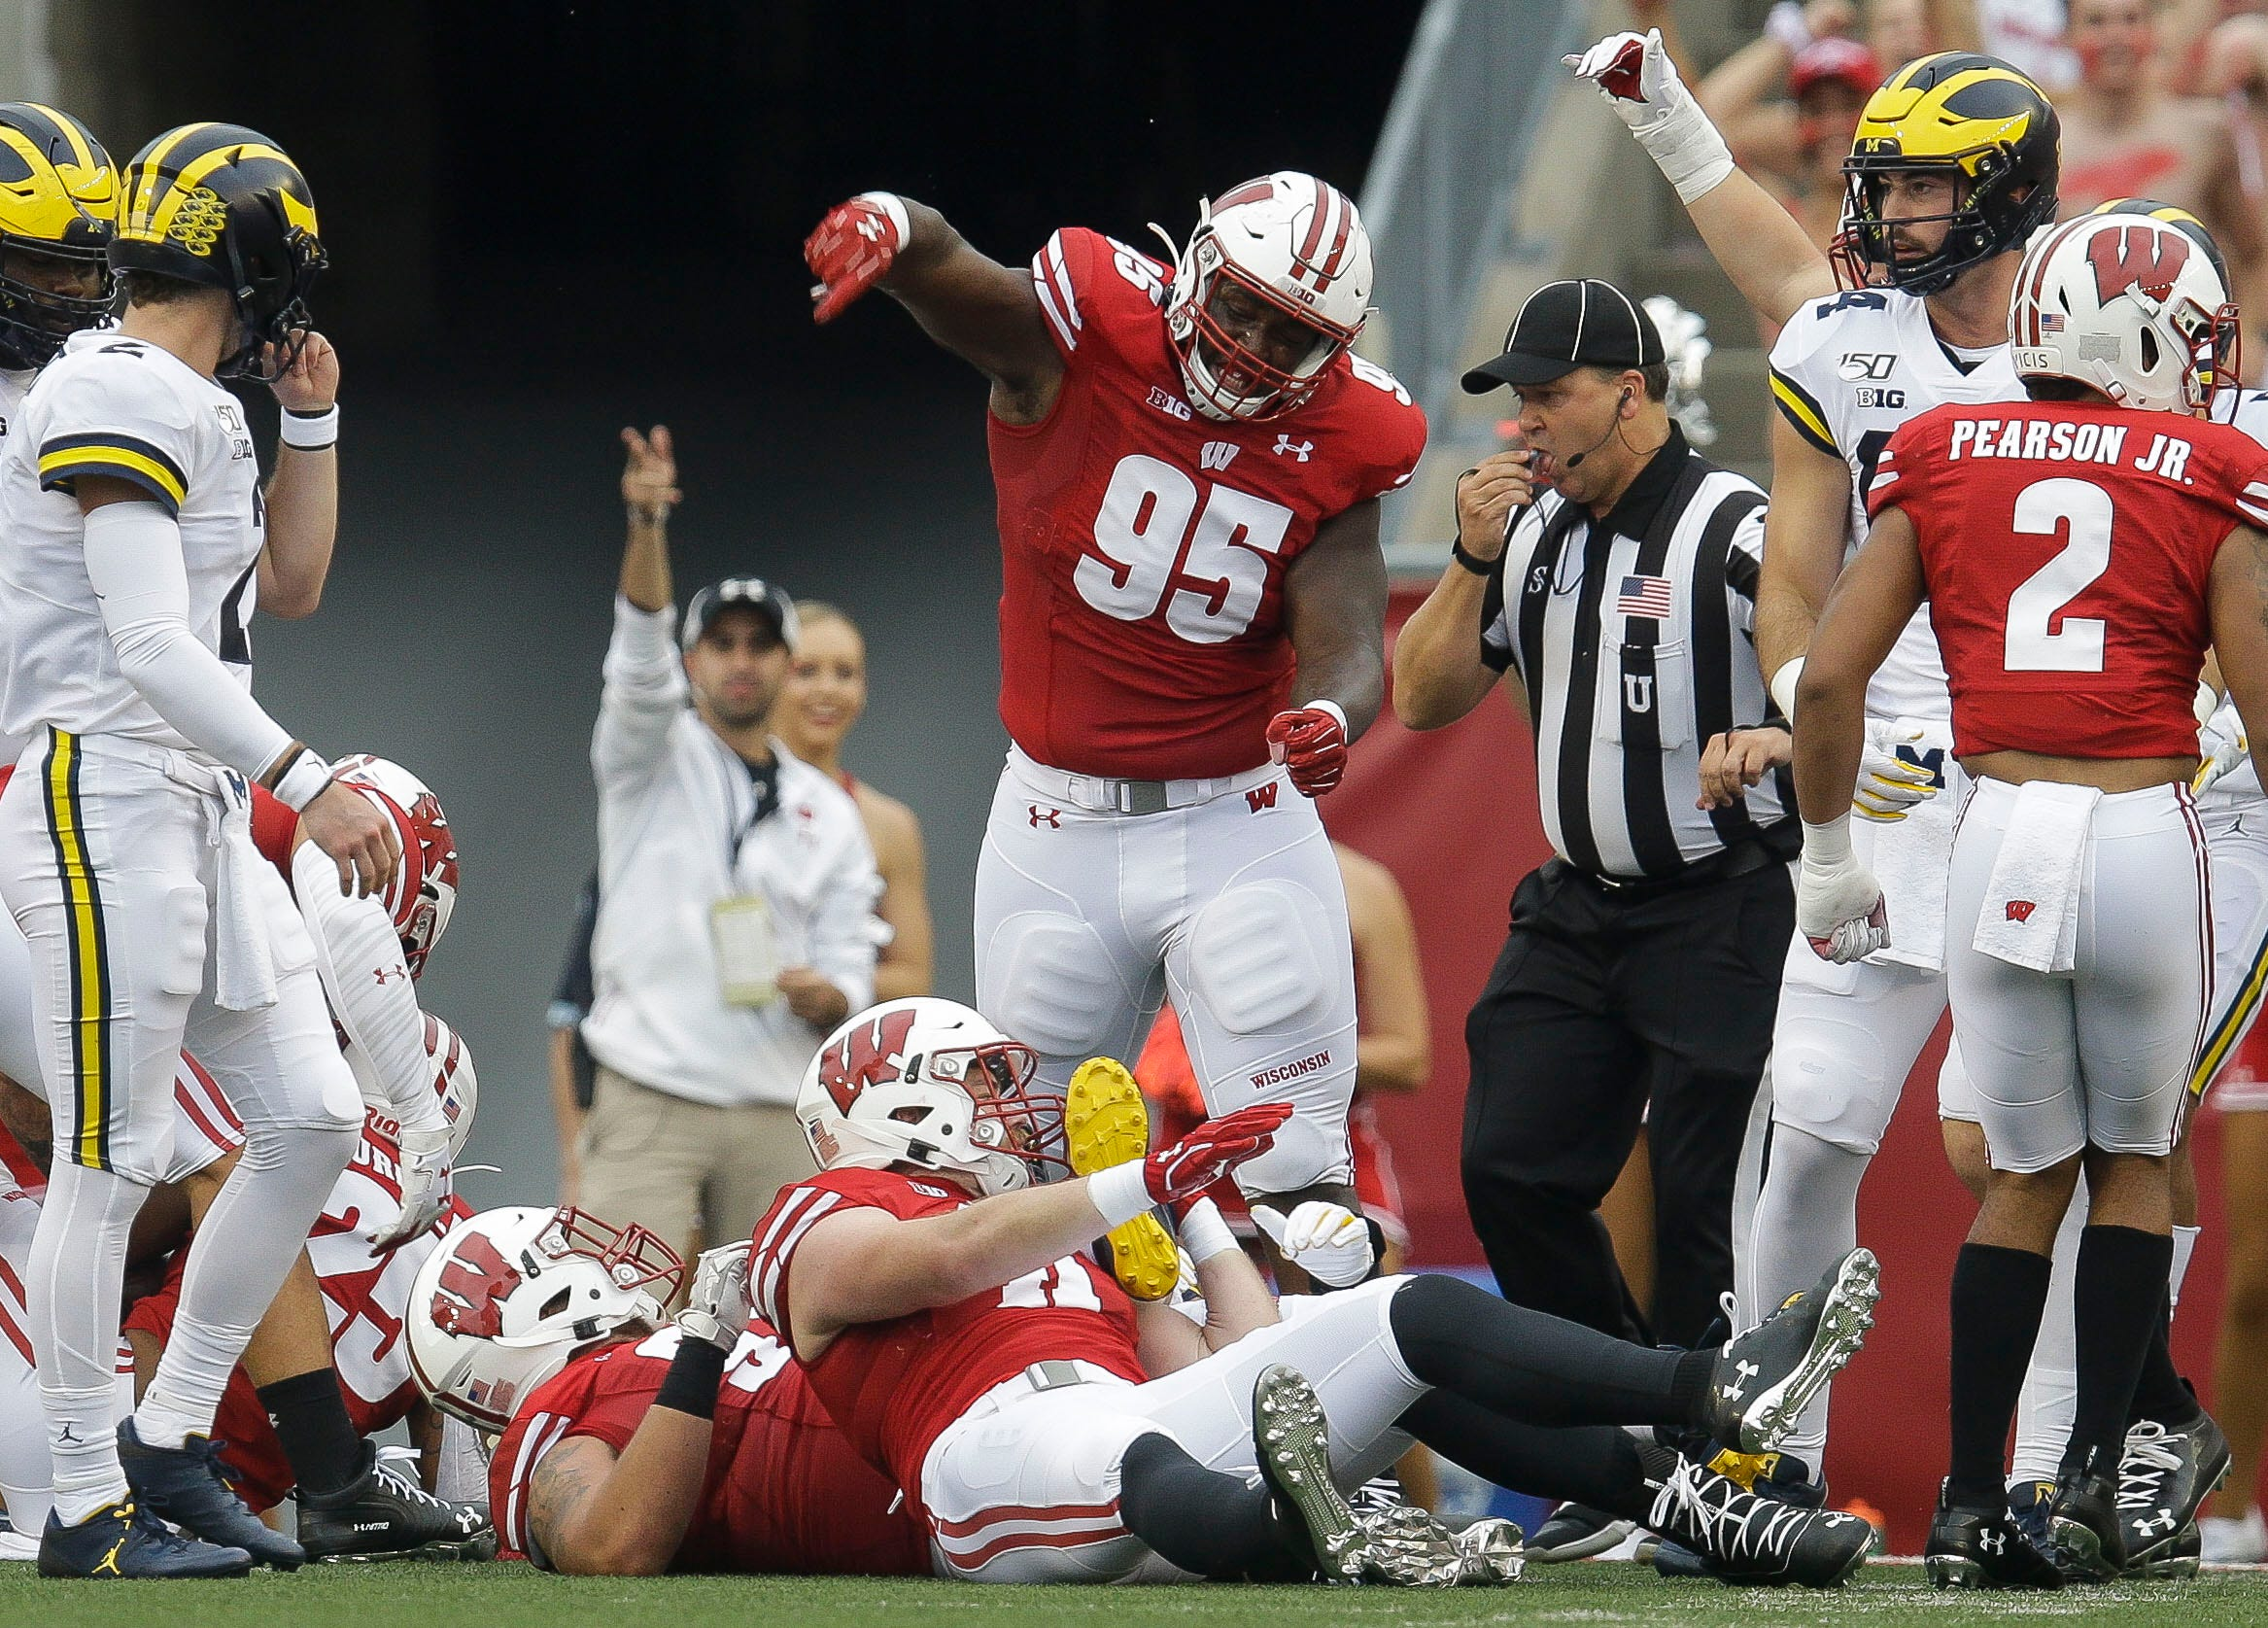 UW defensive coaches want to see Keeanu Benton become a consistent threat